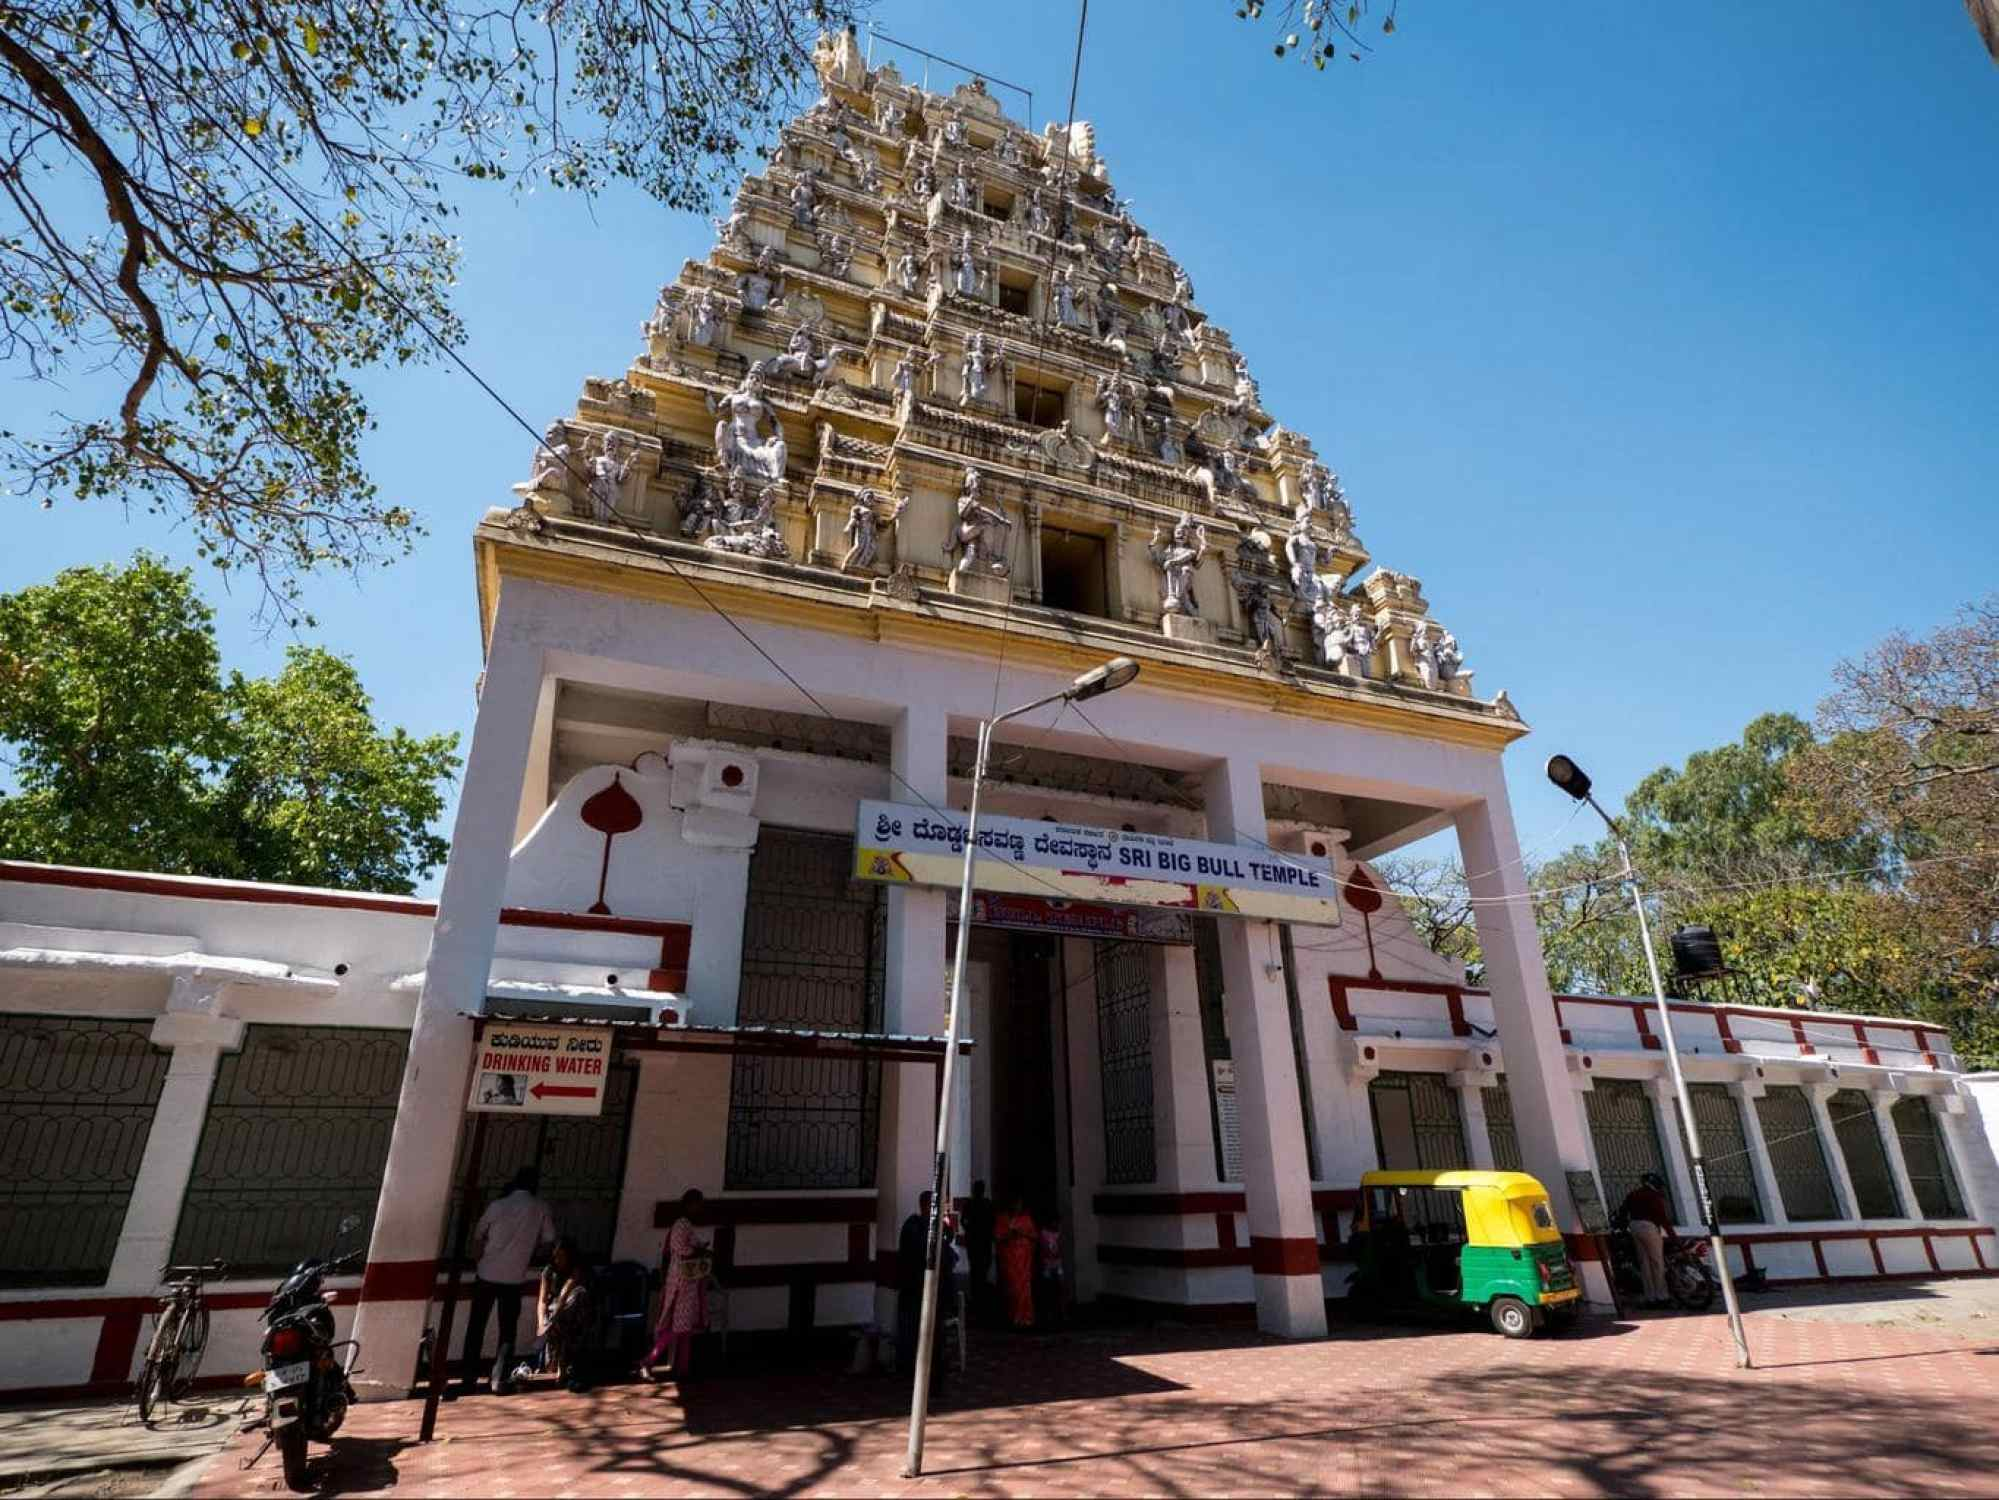 Entrance to the Bull Temple